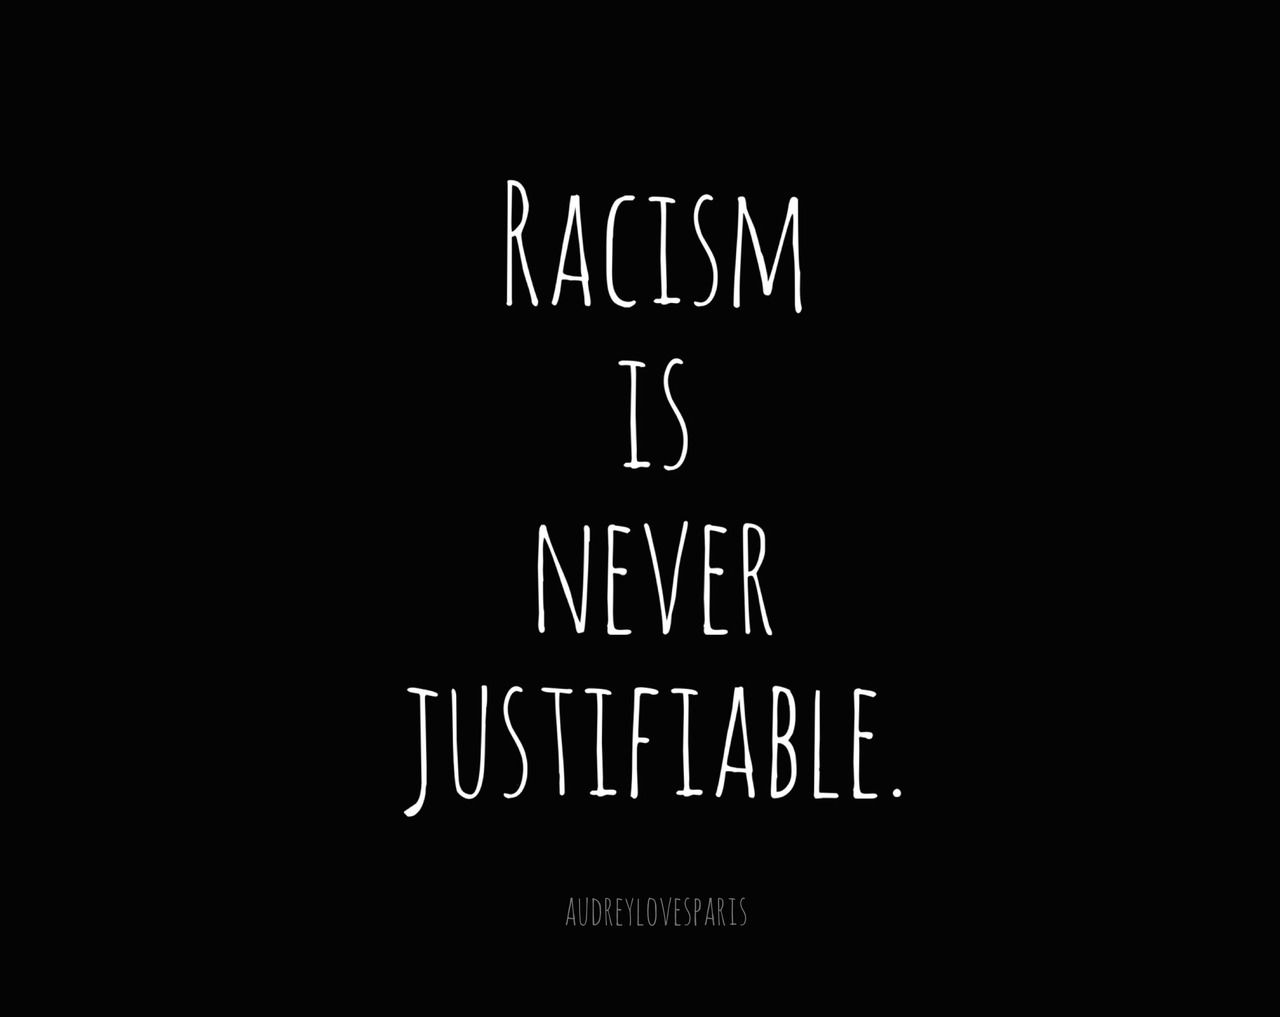 Racism Quotes Race Baiters Are The Epitome Of Evil In Today's American Society